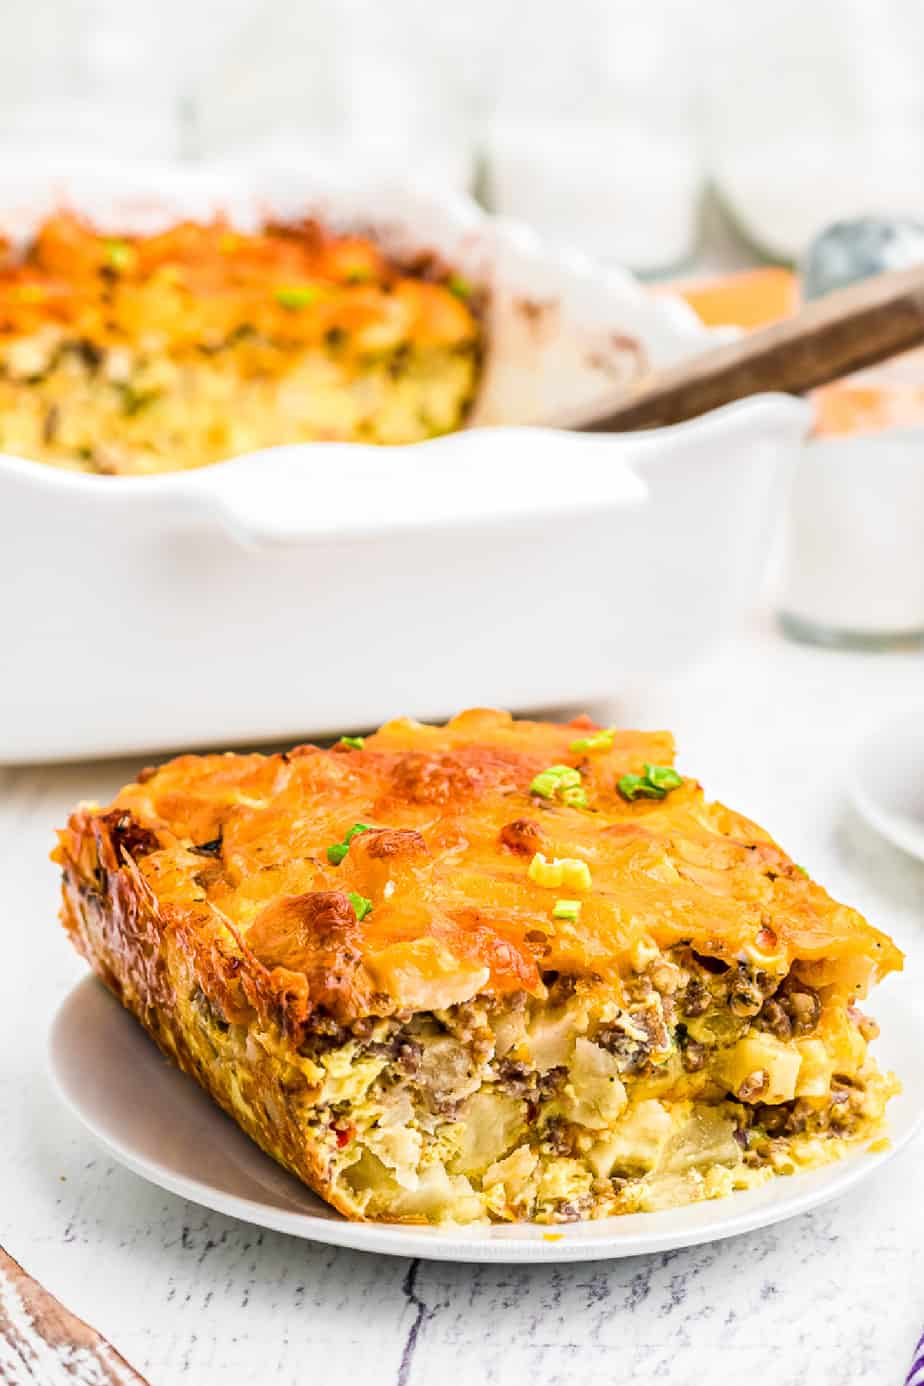 Slice of egg sausage potato breakfast bake  on a plate from the side with a casserole dish in the background.